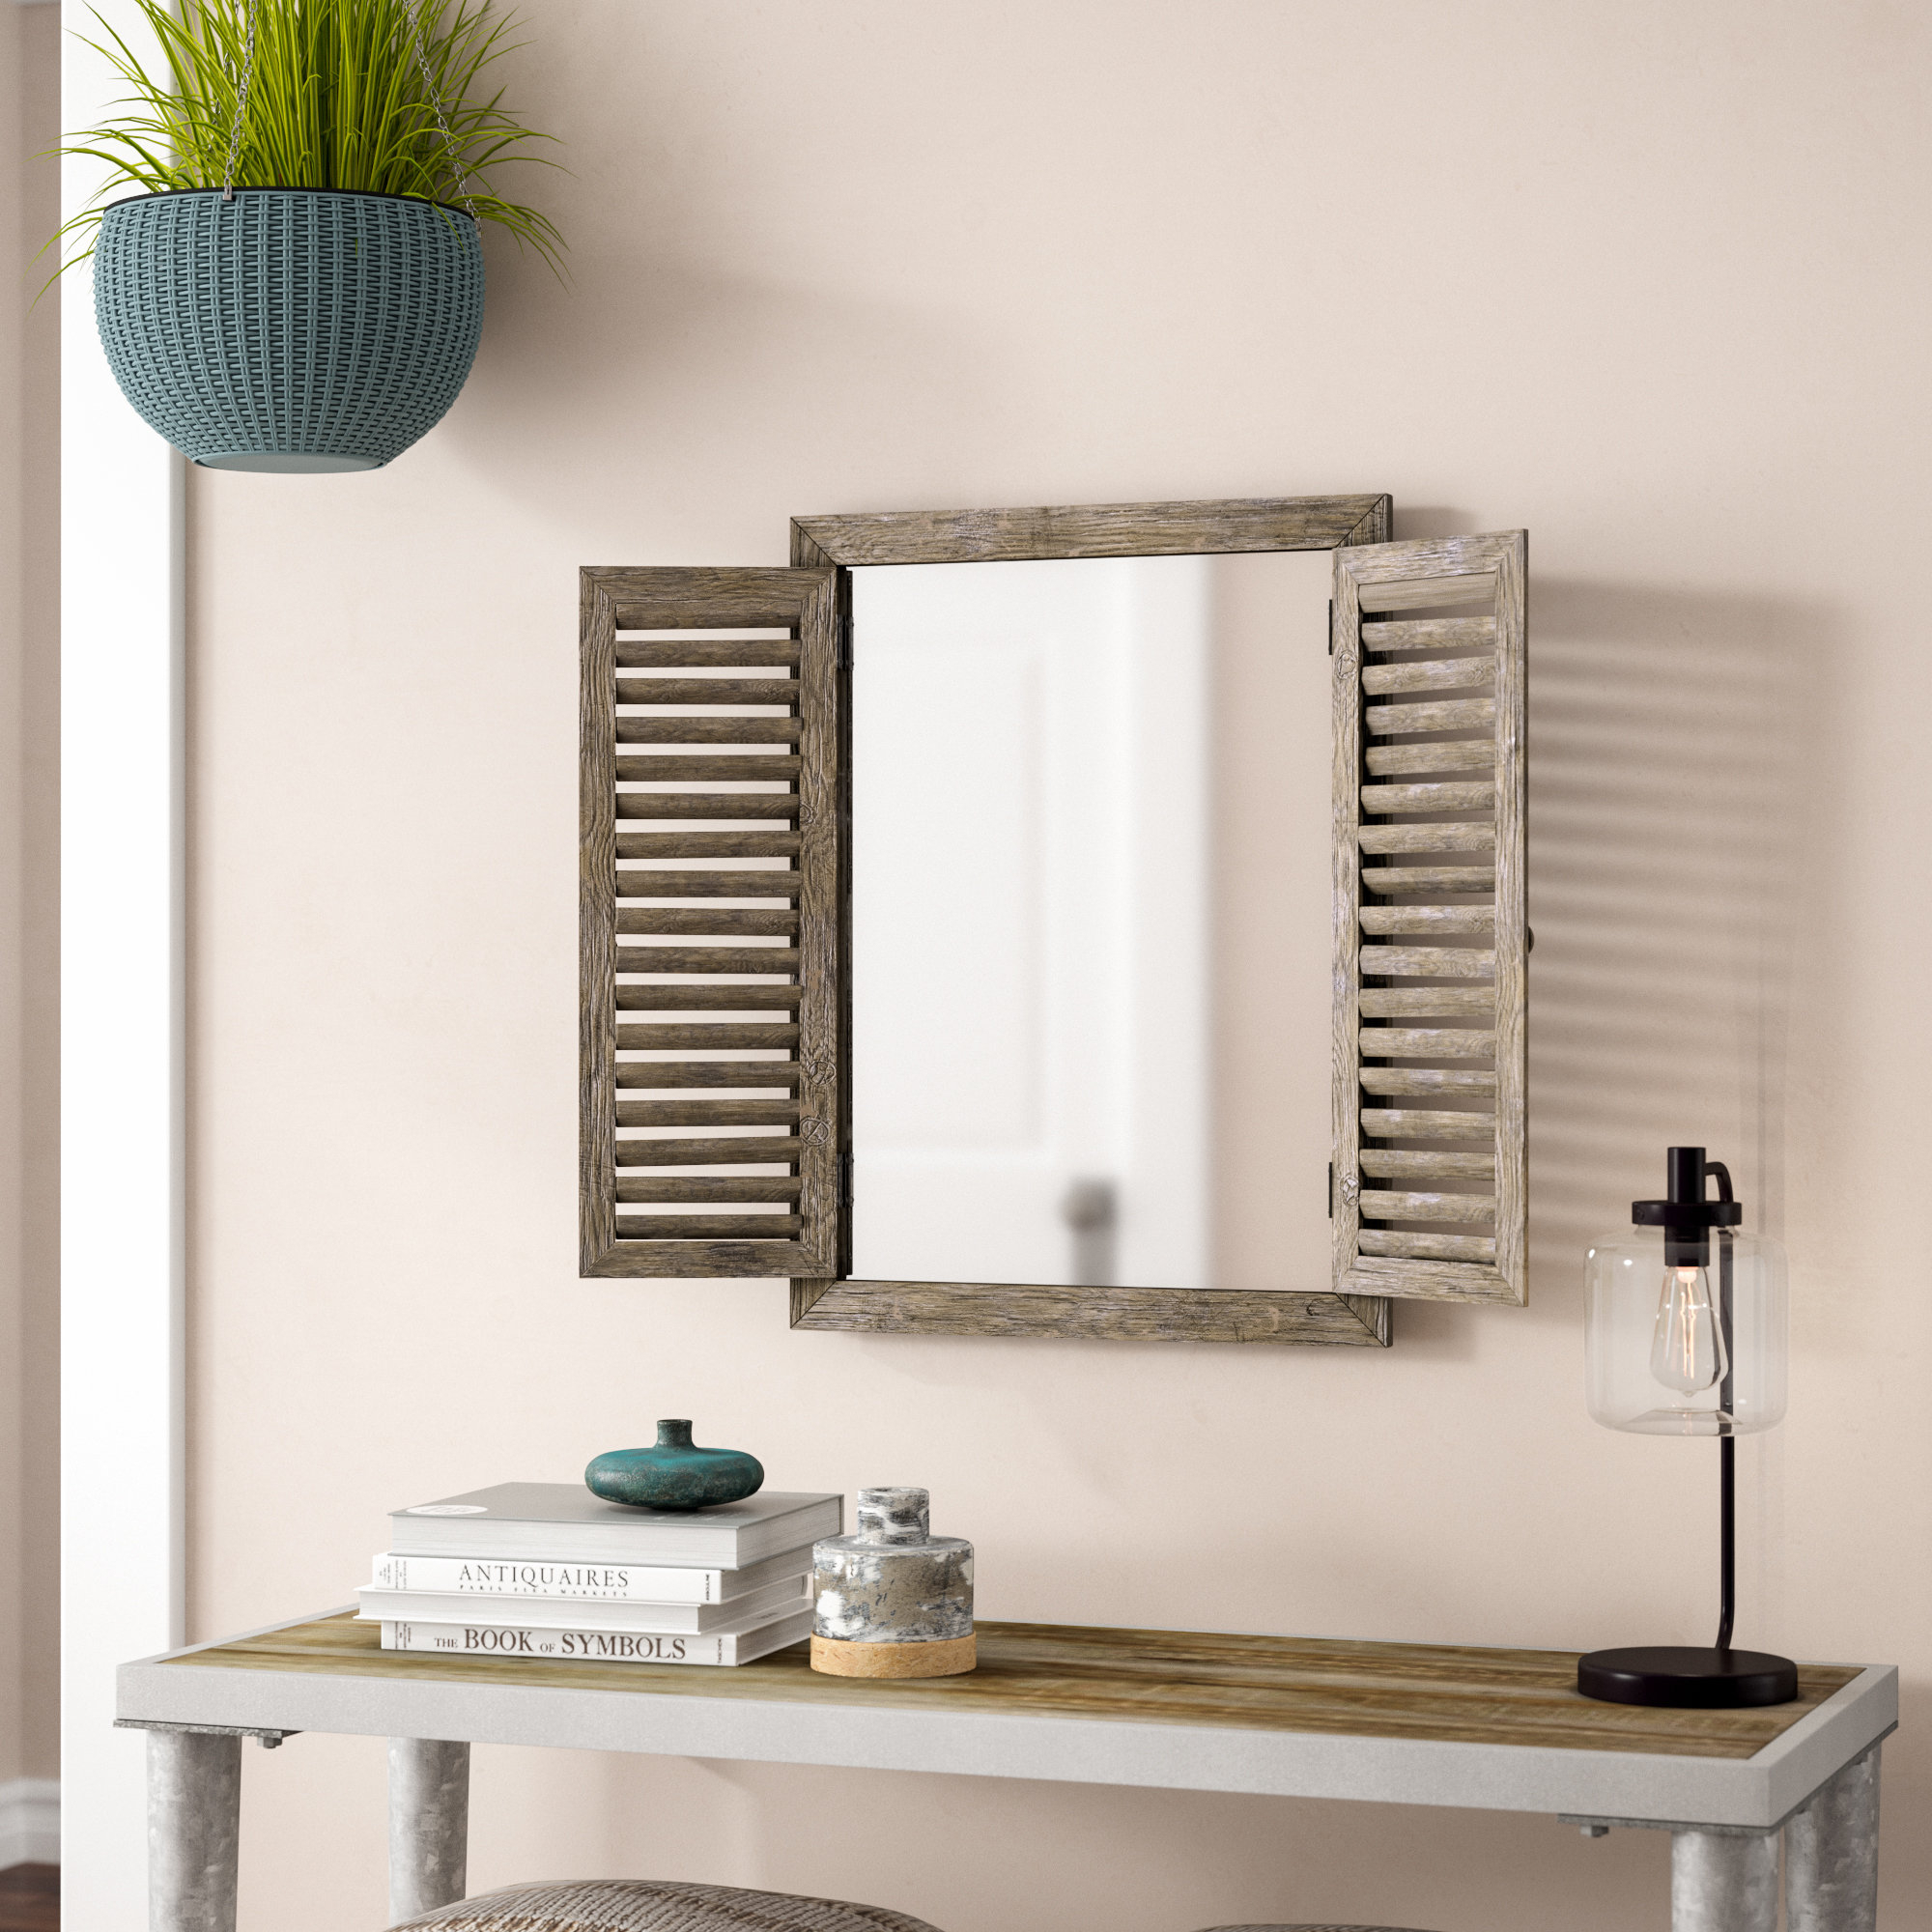 Rustic Windowpane Mirrors | Wayfair Within Lajoie Rustic Accent Mirrors (View 19 of 20)